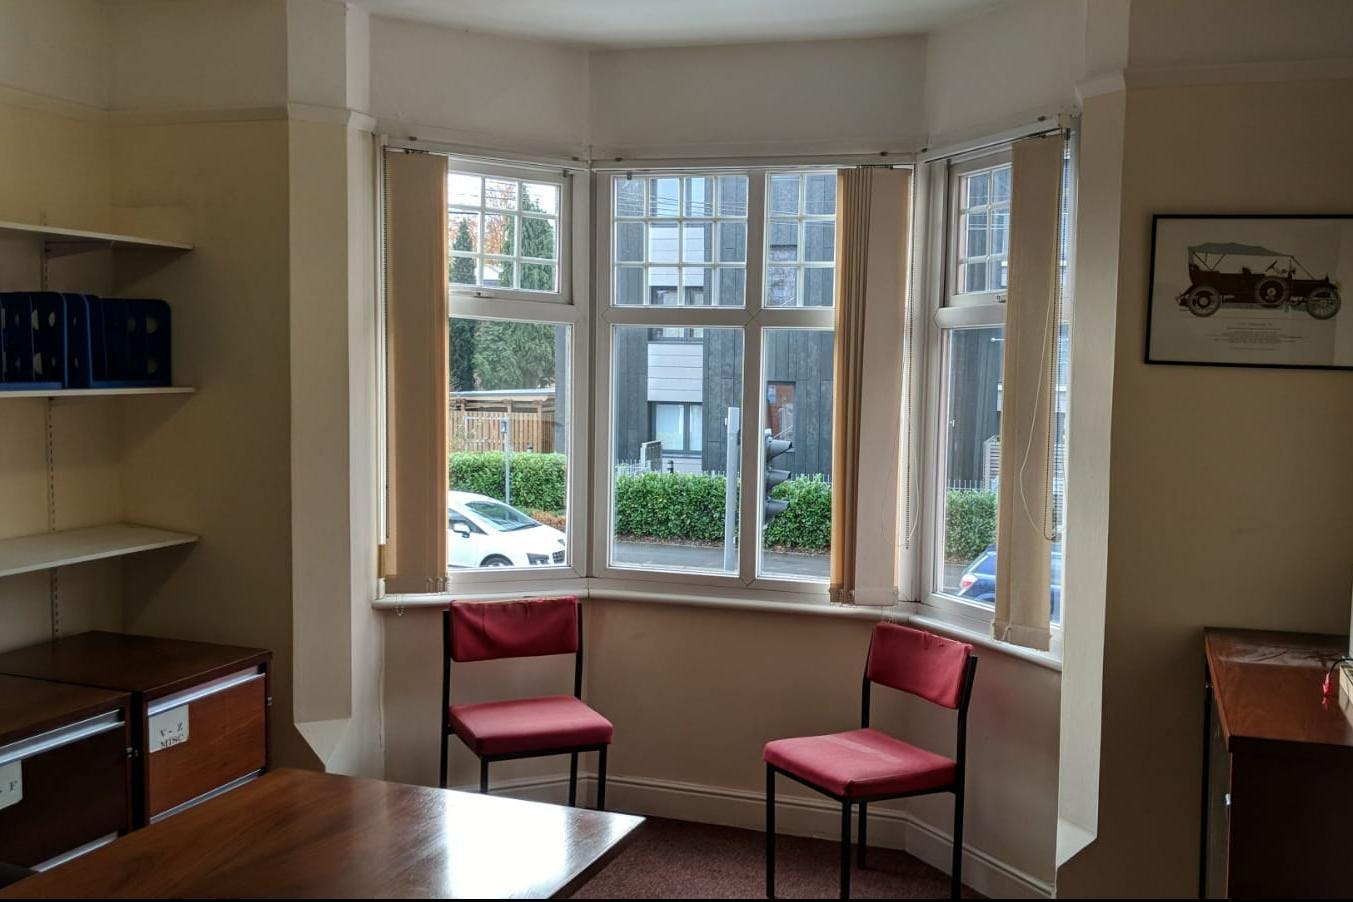 Dudley House, Kings Road, Fleet, Offices To Let - IMG-20181109-WA0004.jpg